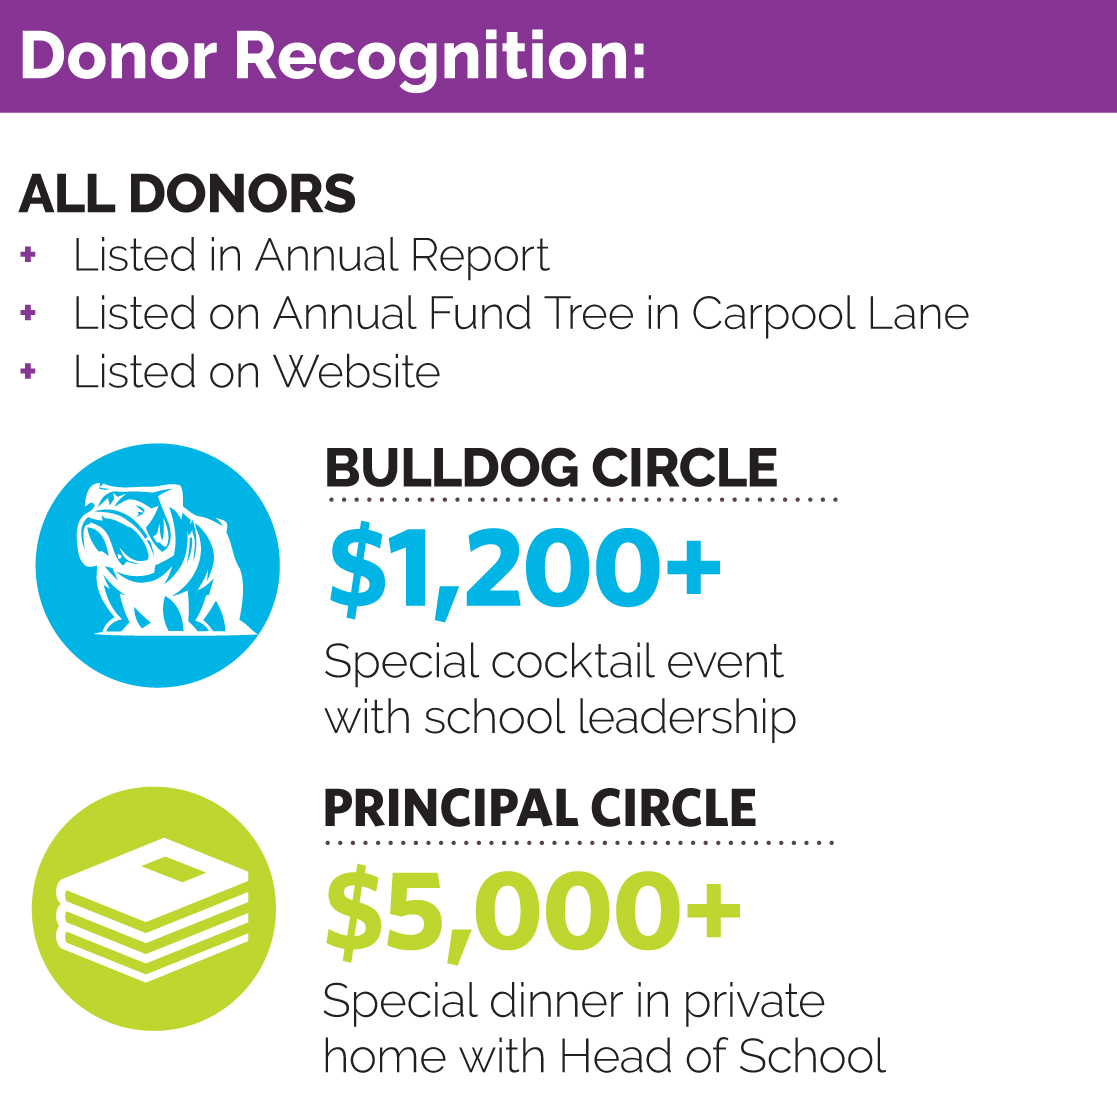 donor recognition.jpg